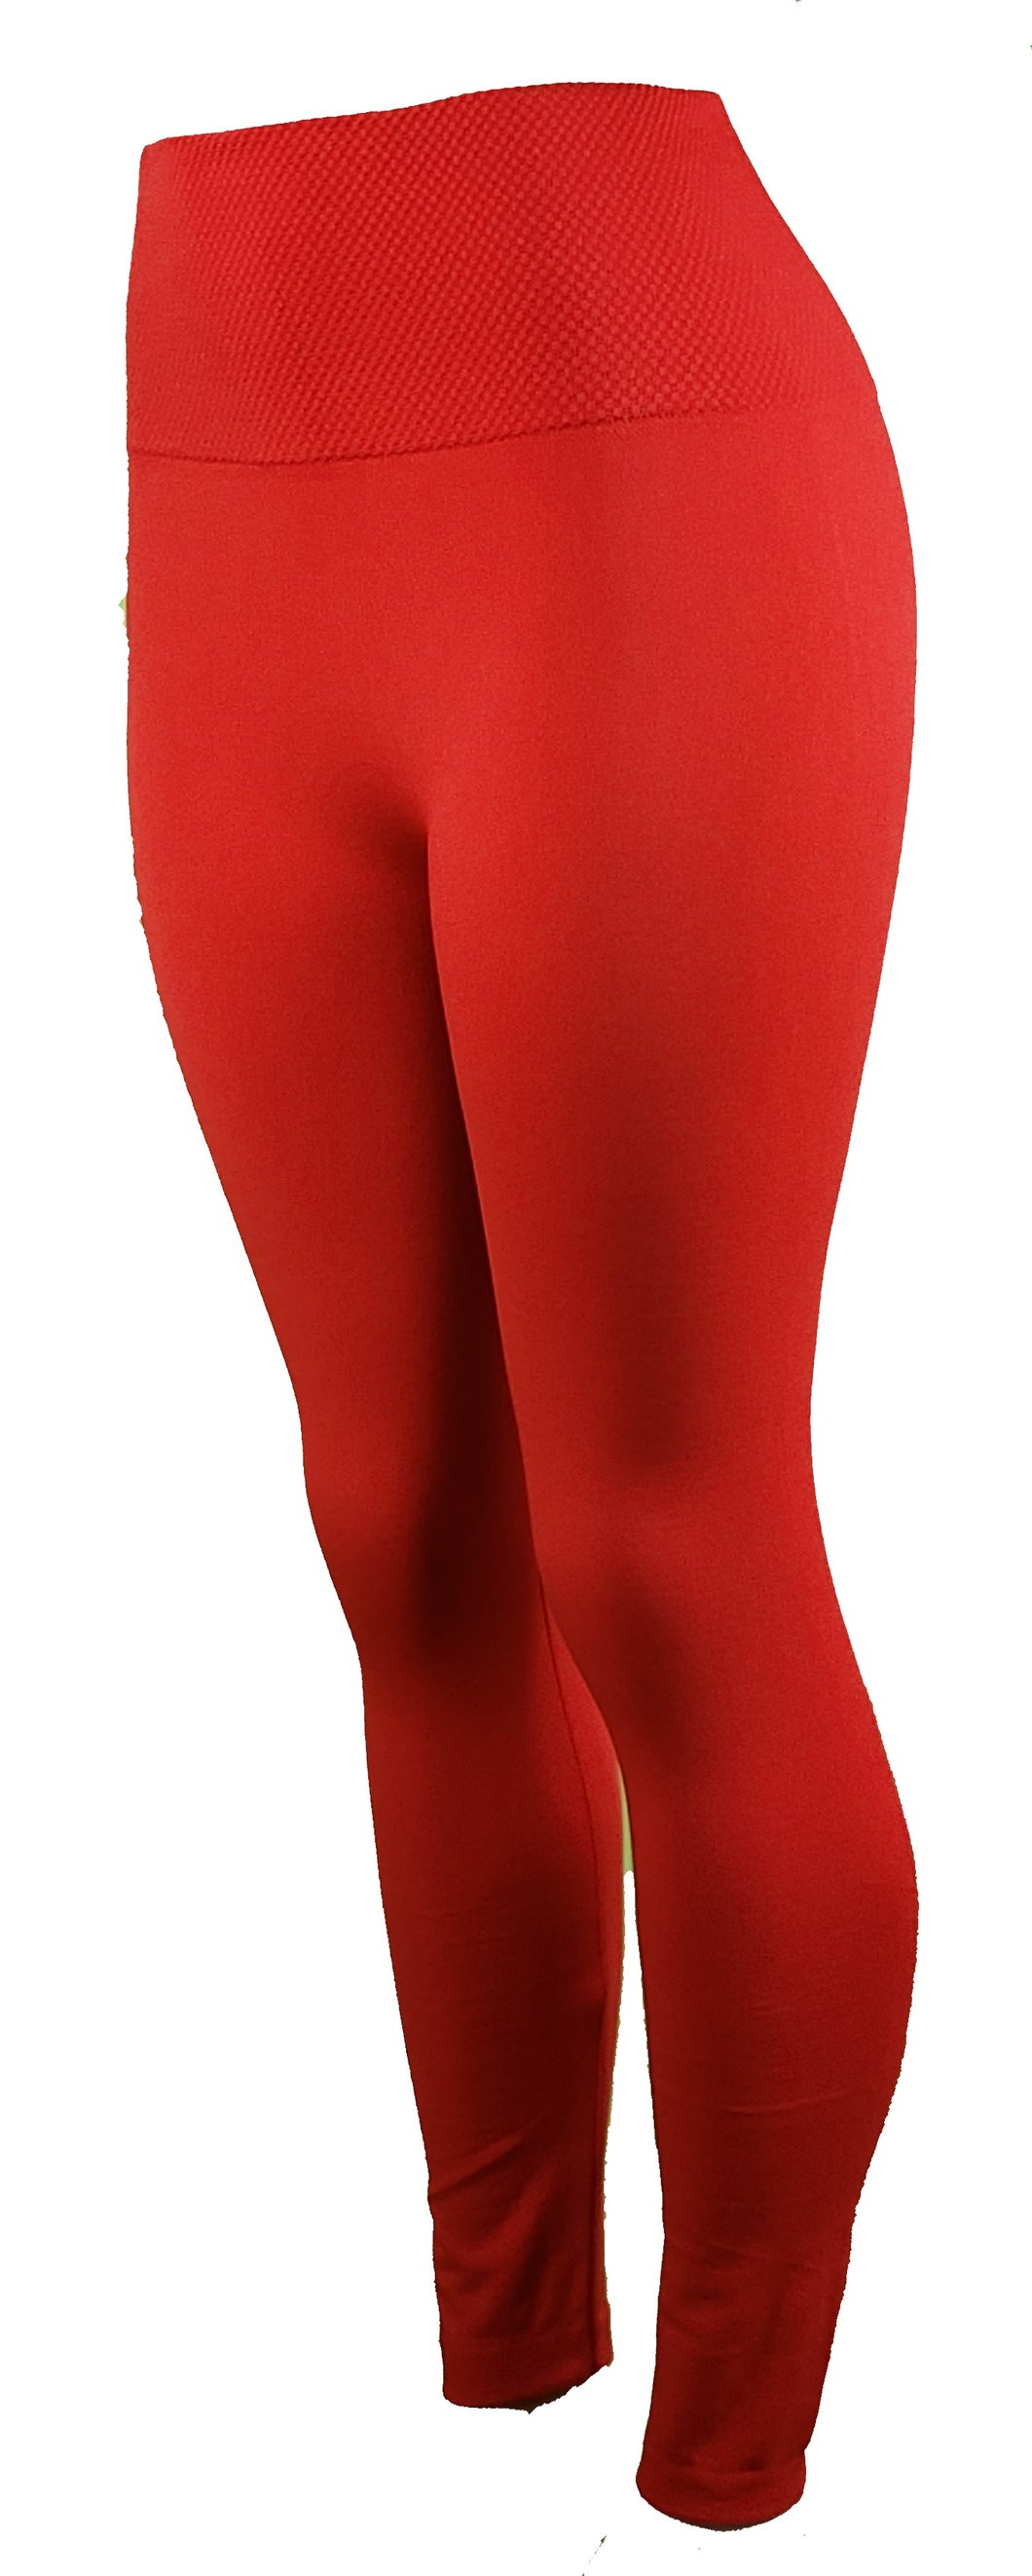 GS4LESS Women's Red One Size Casual Leggings